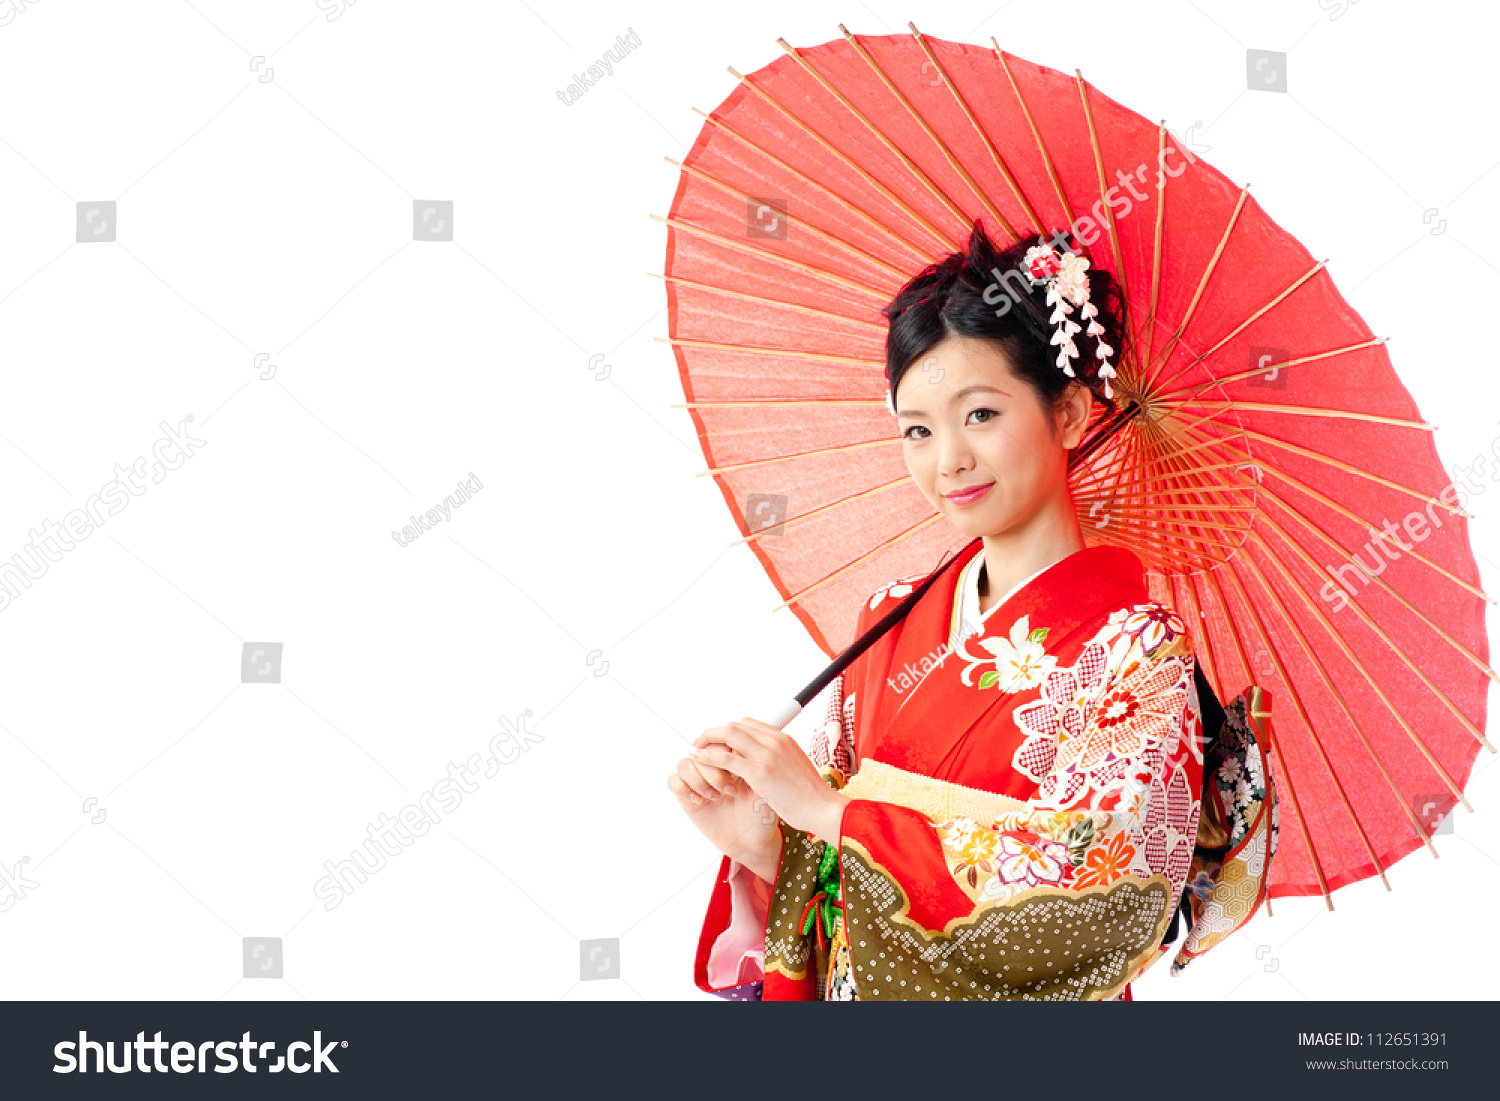 japanese girl wearing kimono - photo #32